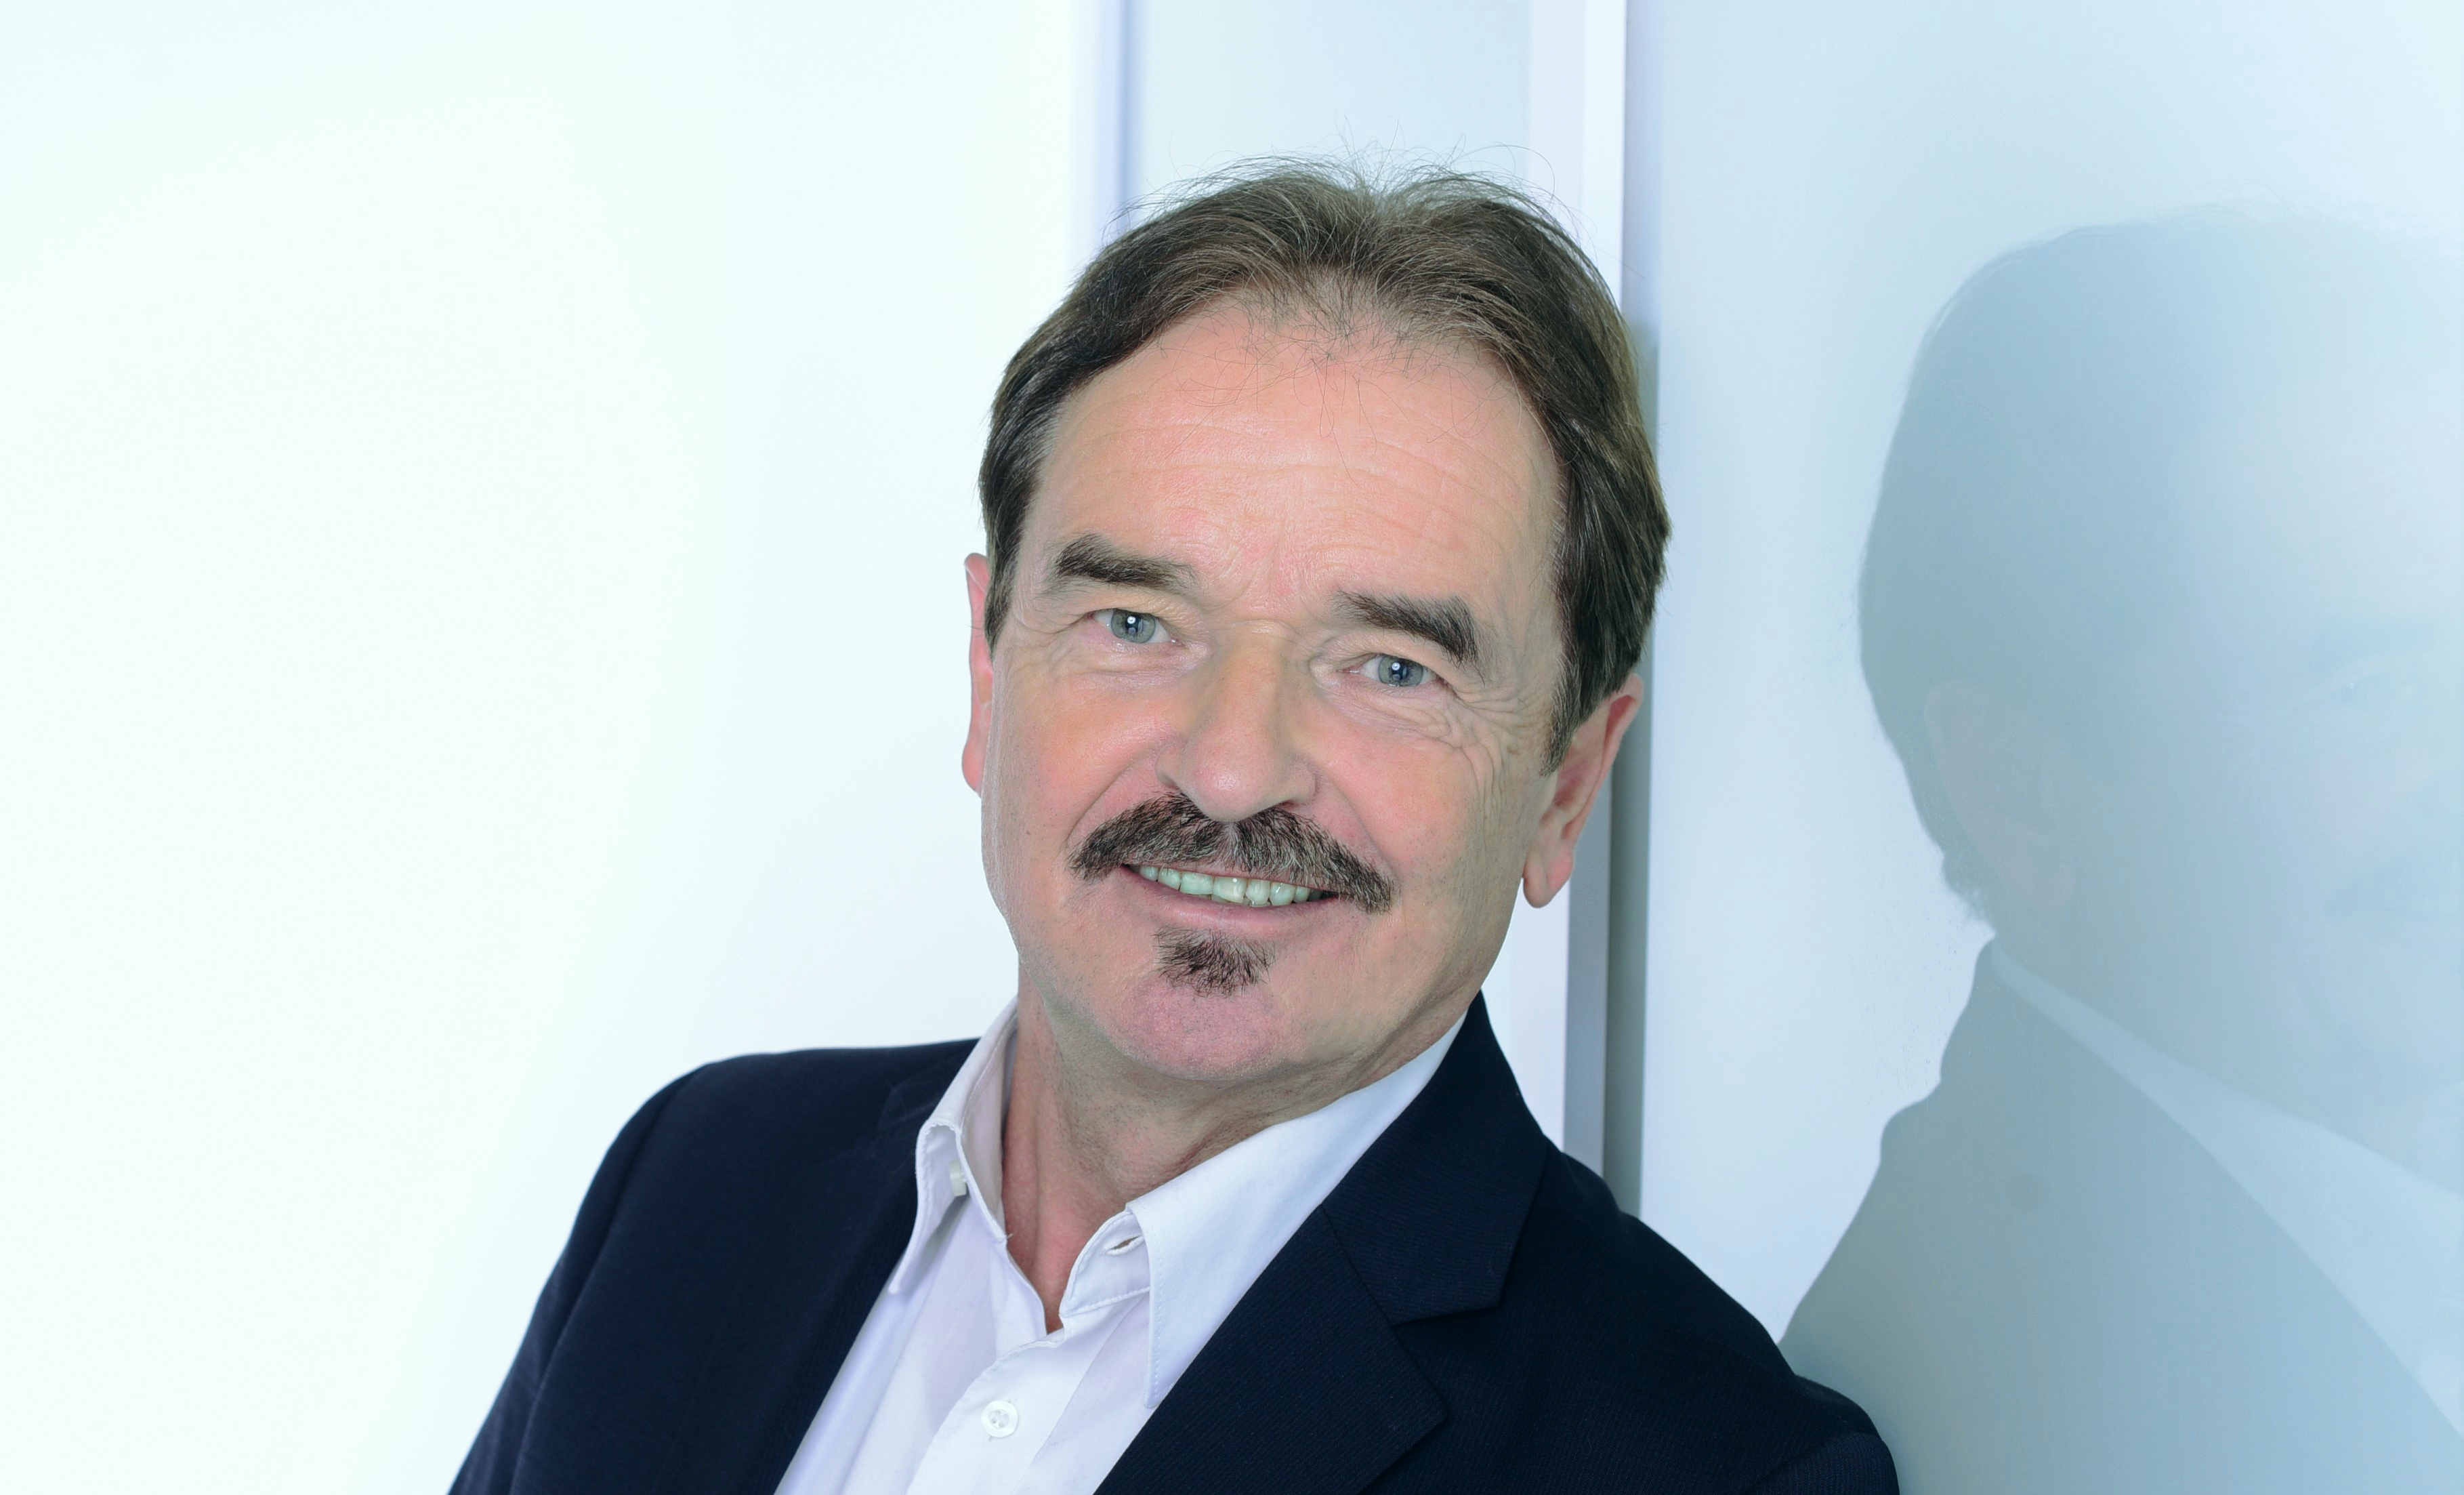 Dr Joe Harder, The founder of OneStone Consulting